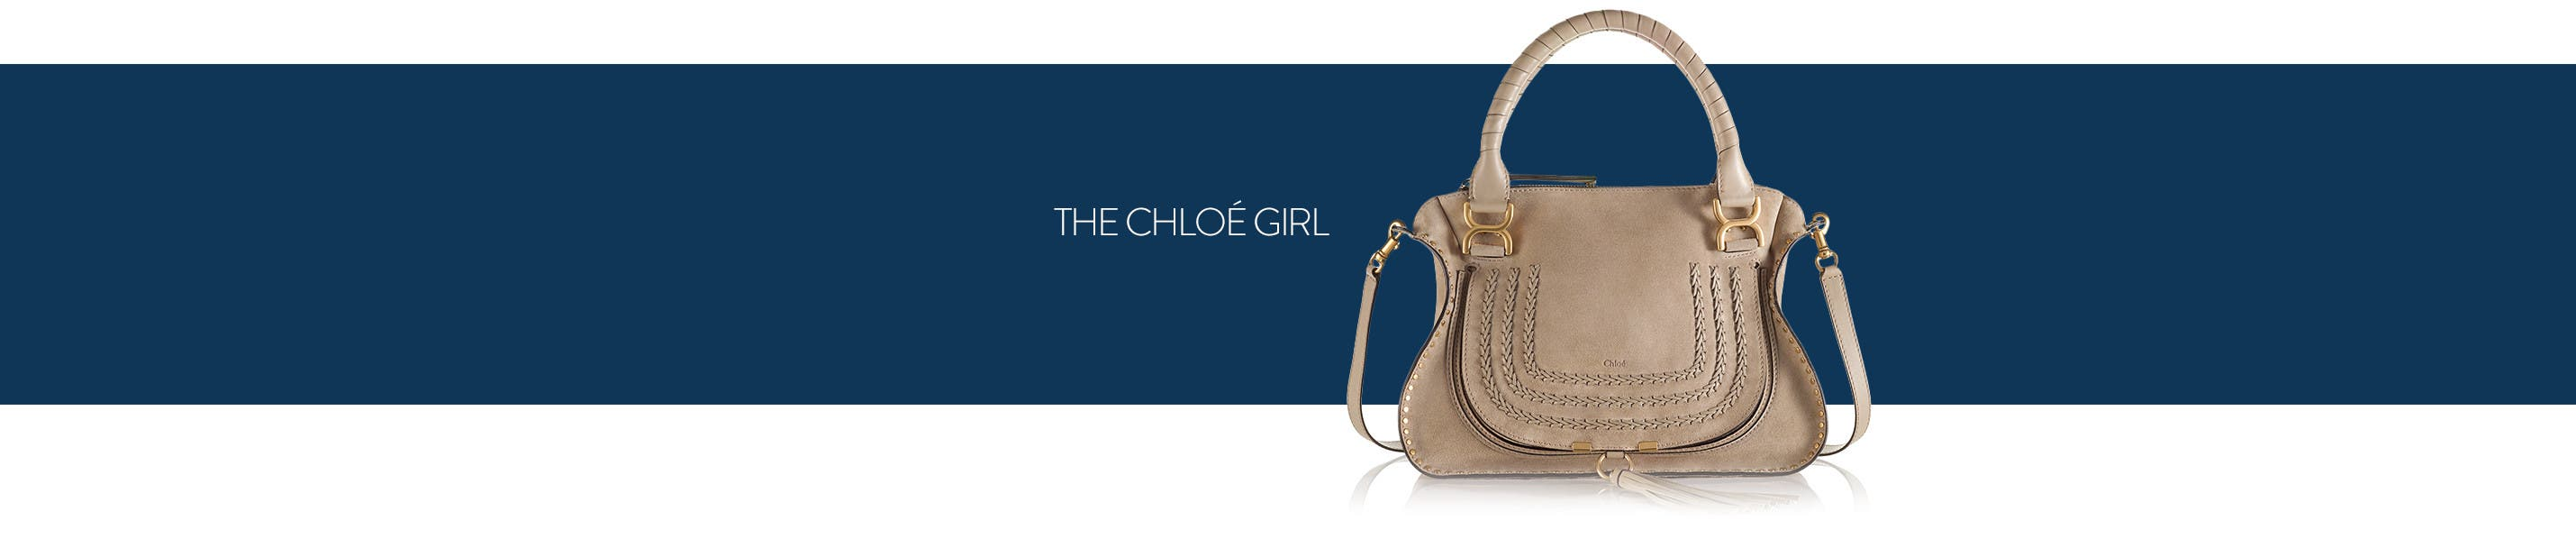 The Chloe girl: handbags.